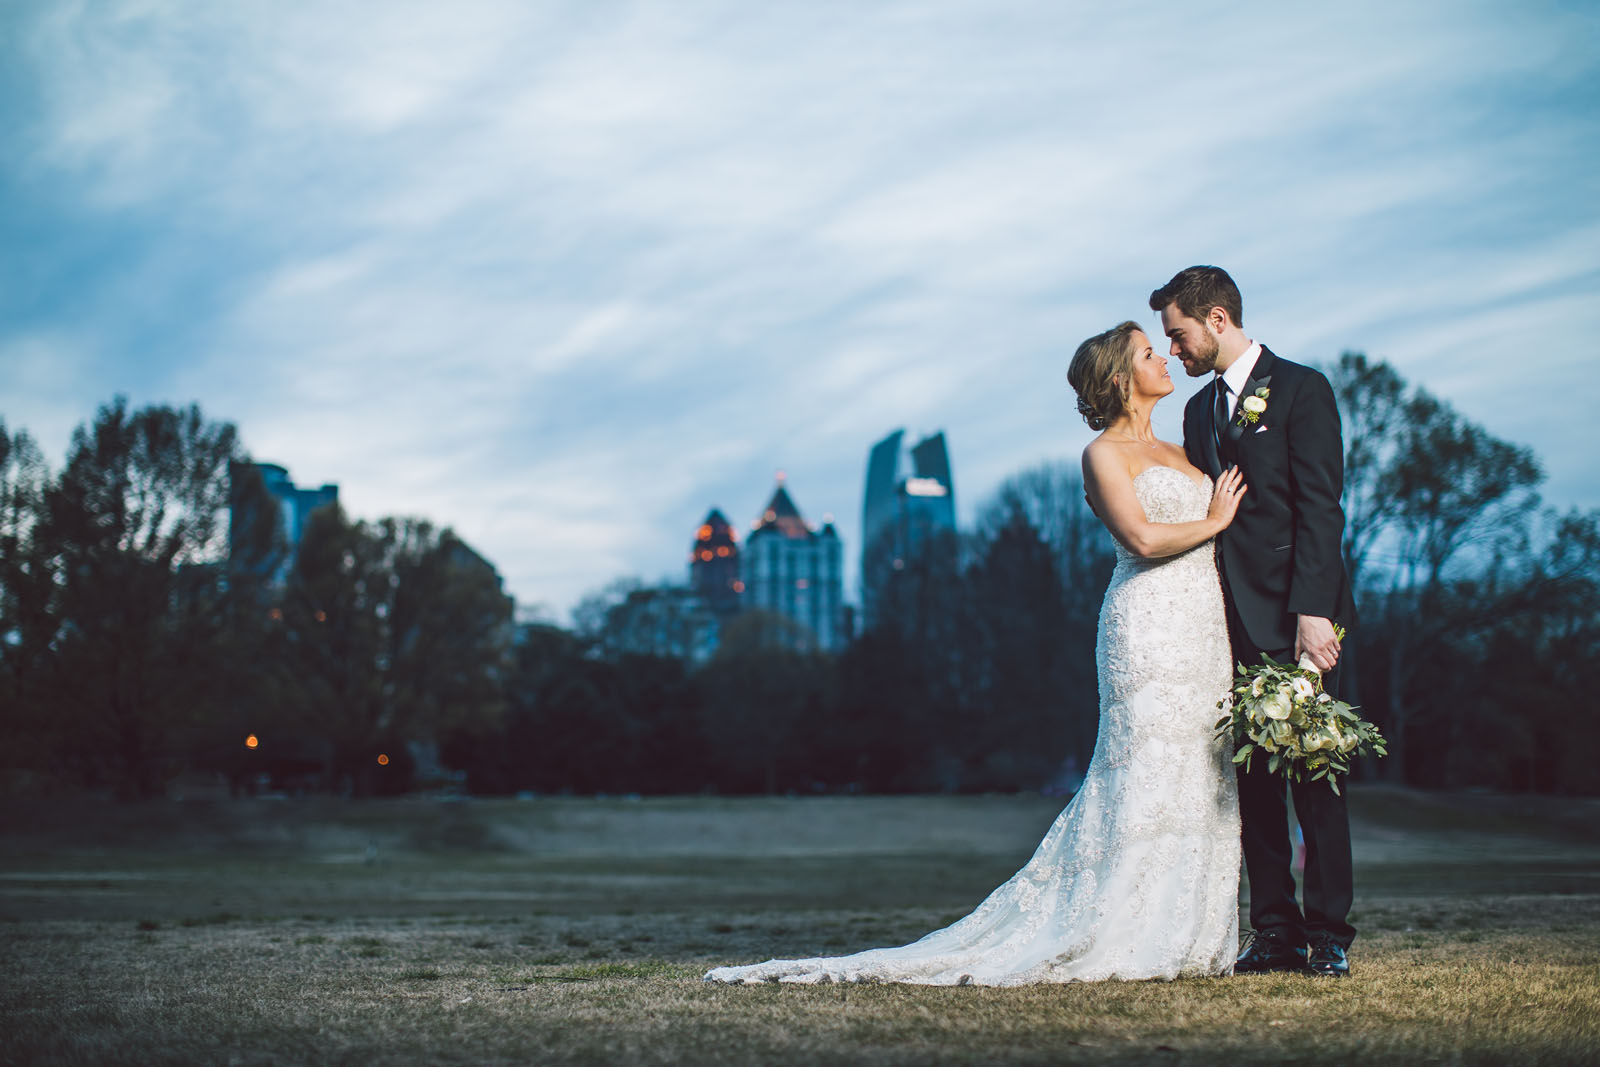 Kim+Zachary-Preview-35.jpg